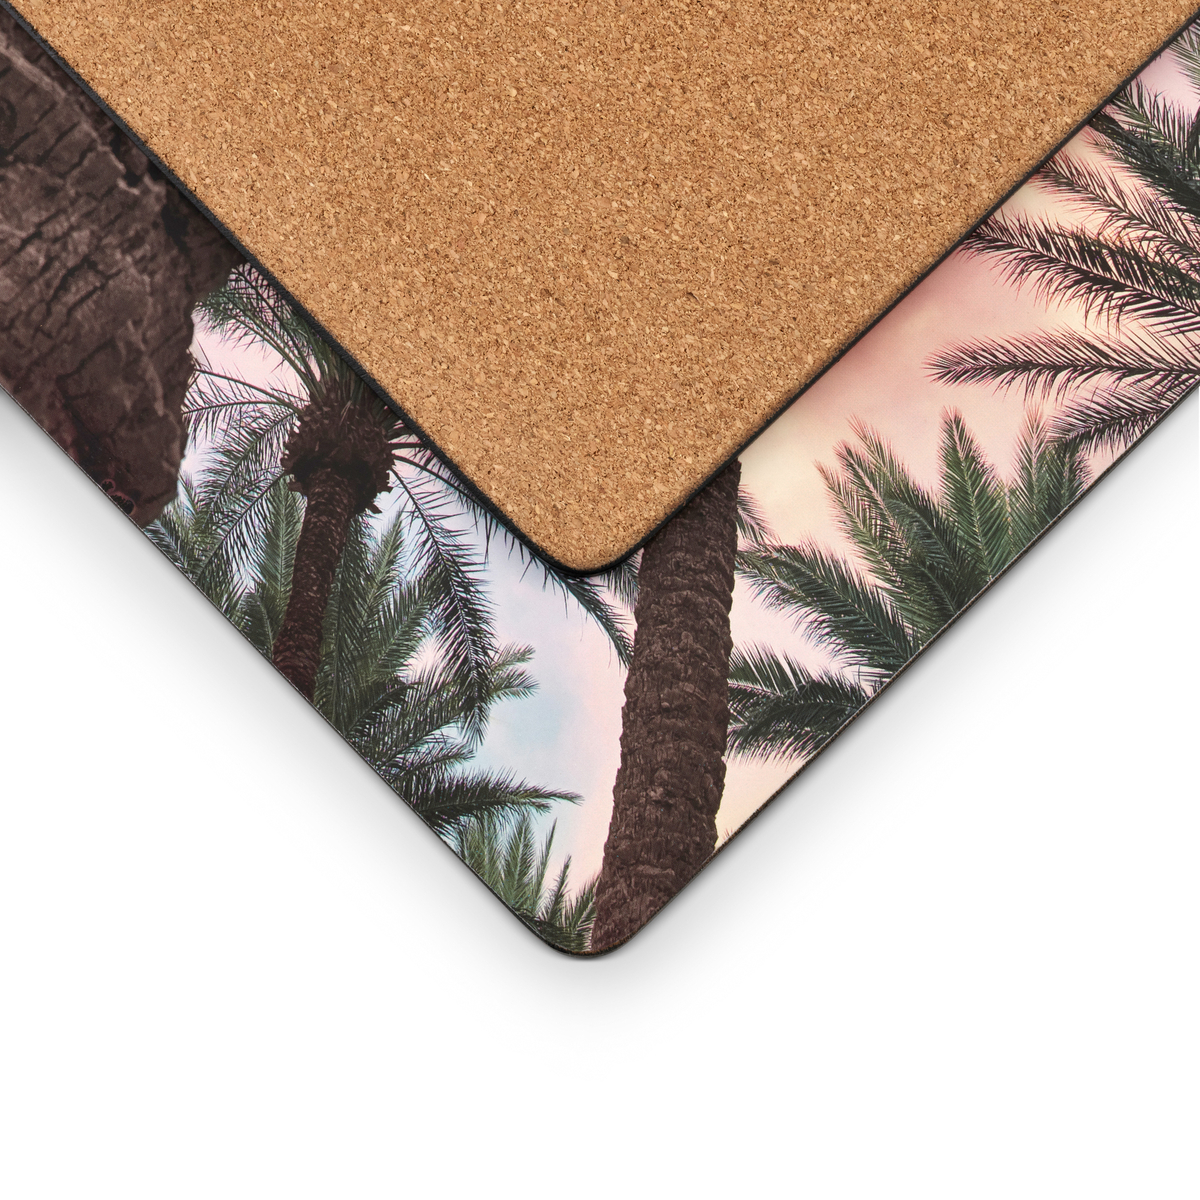 Pimpernel Tropical Placemats Set of 4 image number 1